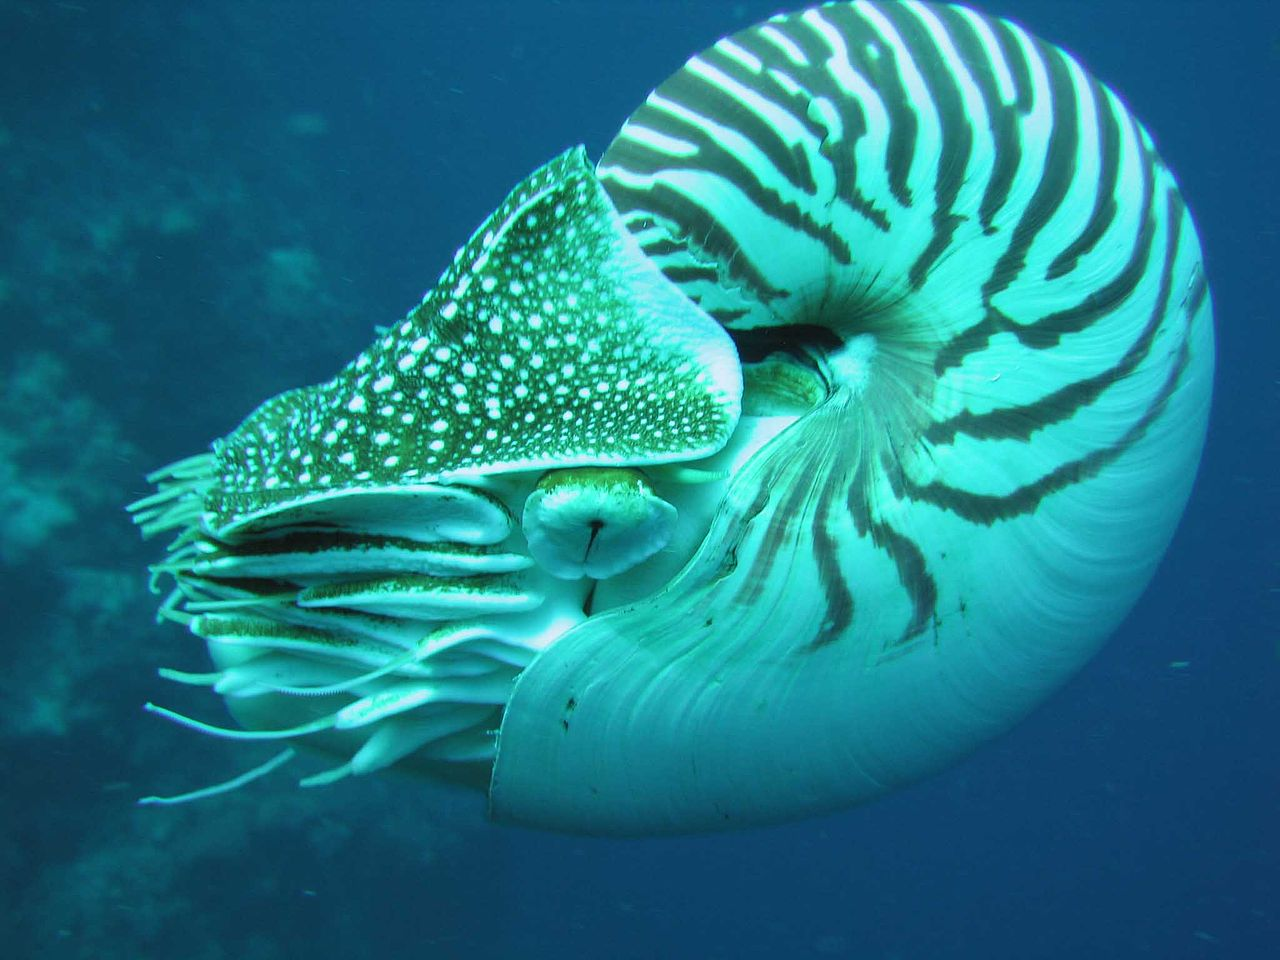 Palau nautilus from side. Palau, Micronesia. Photo by Lee R. Berger.